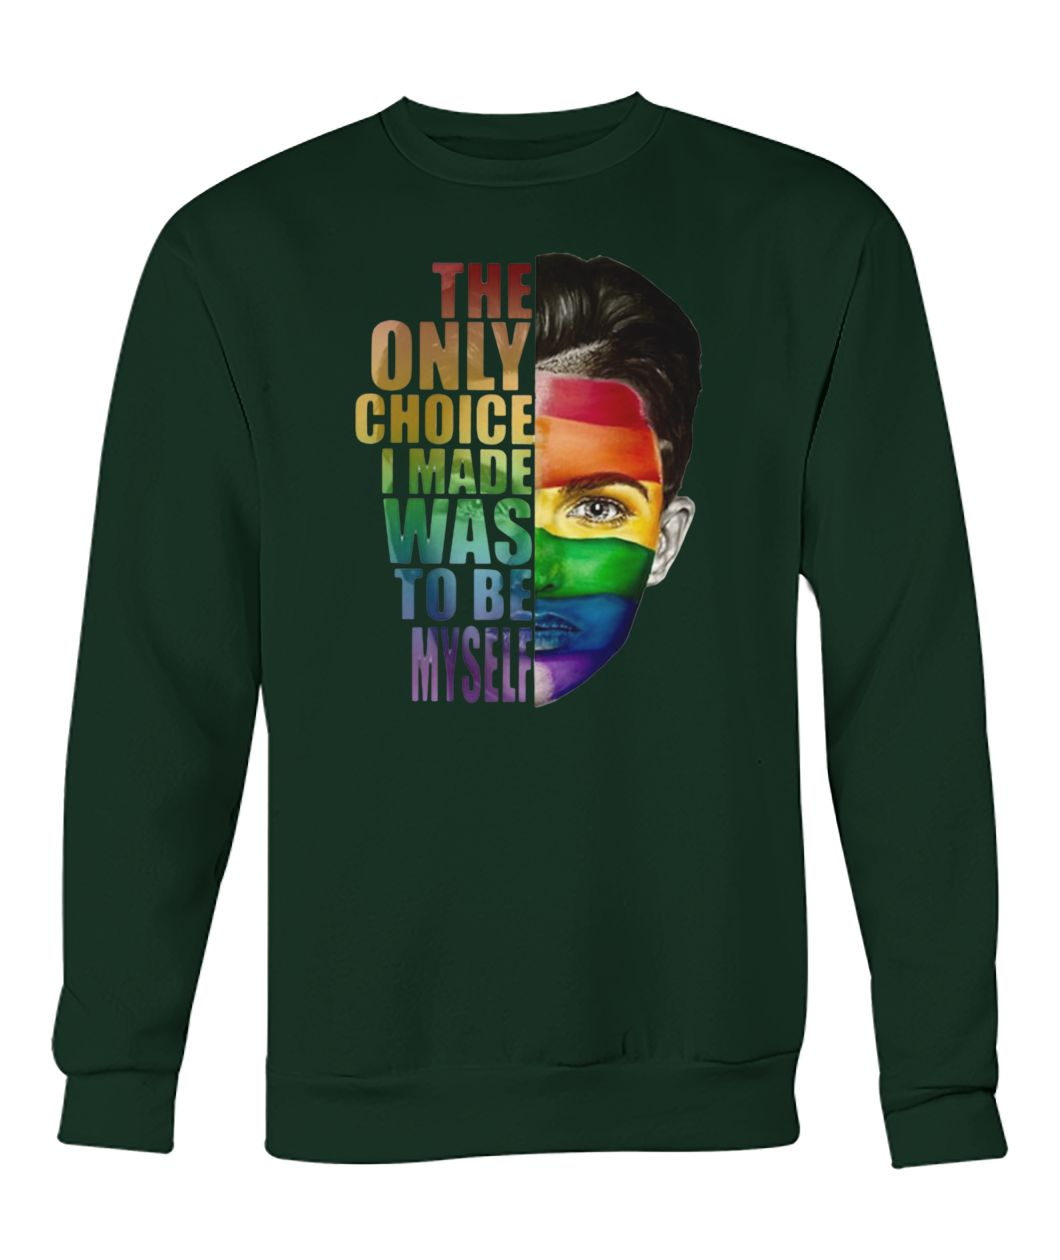 Ruby rose the only choice i made was to be myself LGBT crew neck sweatshirt